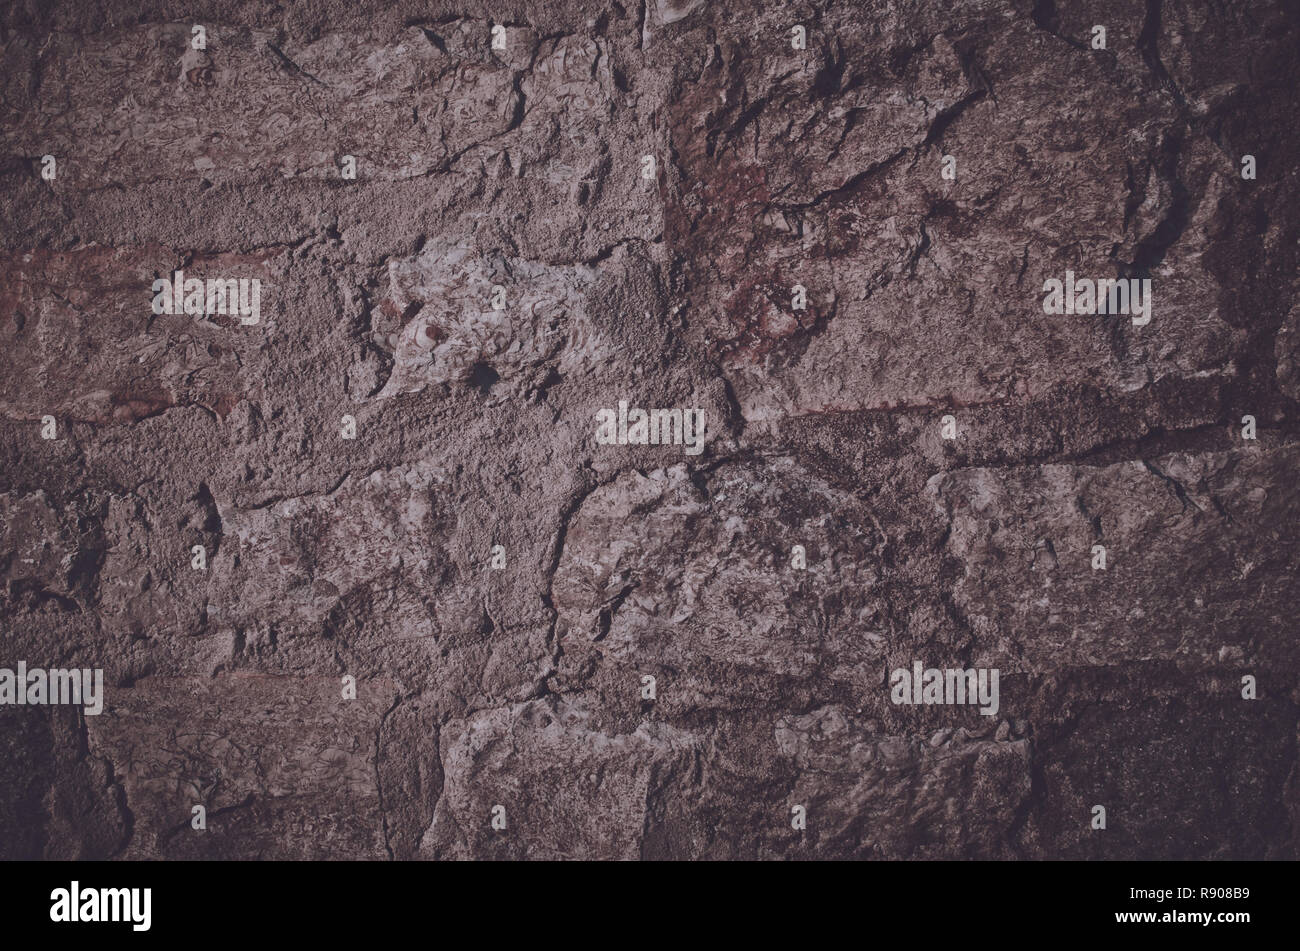 Old stone texture background - Stock Image